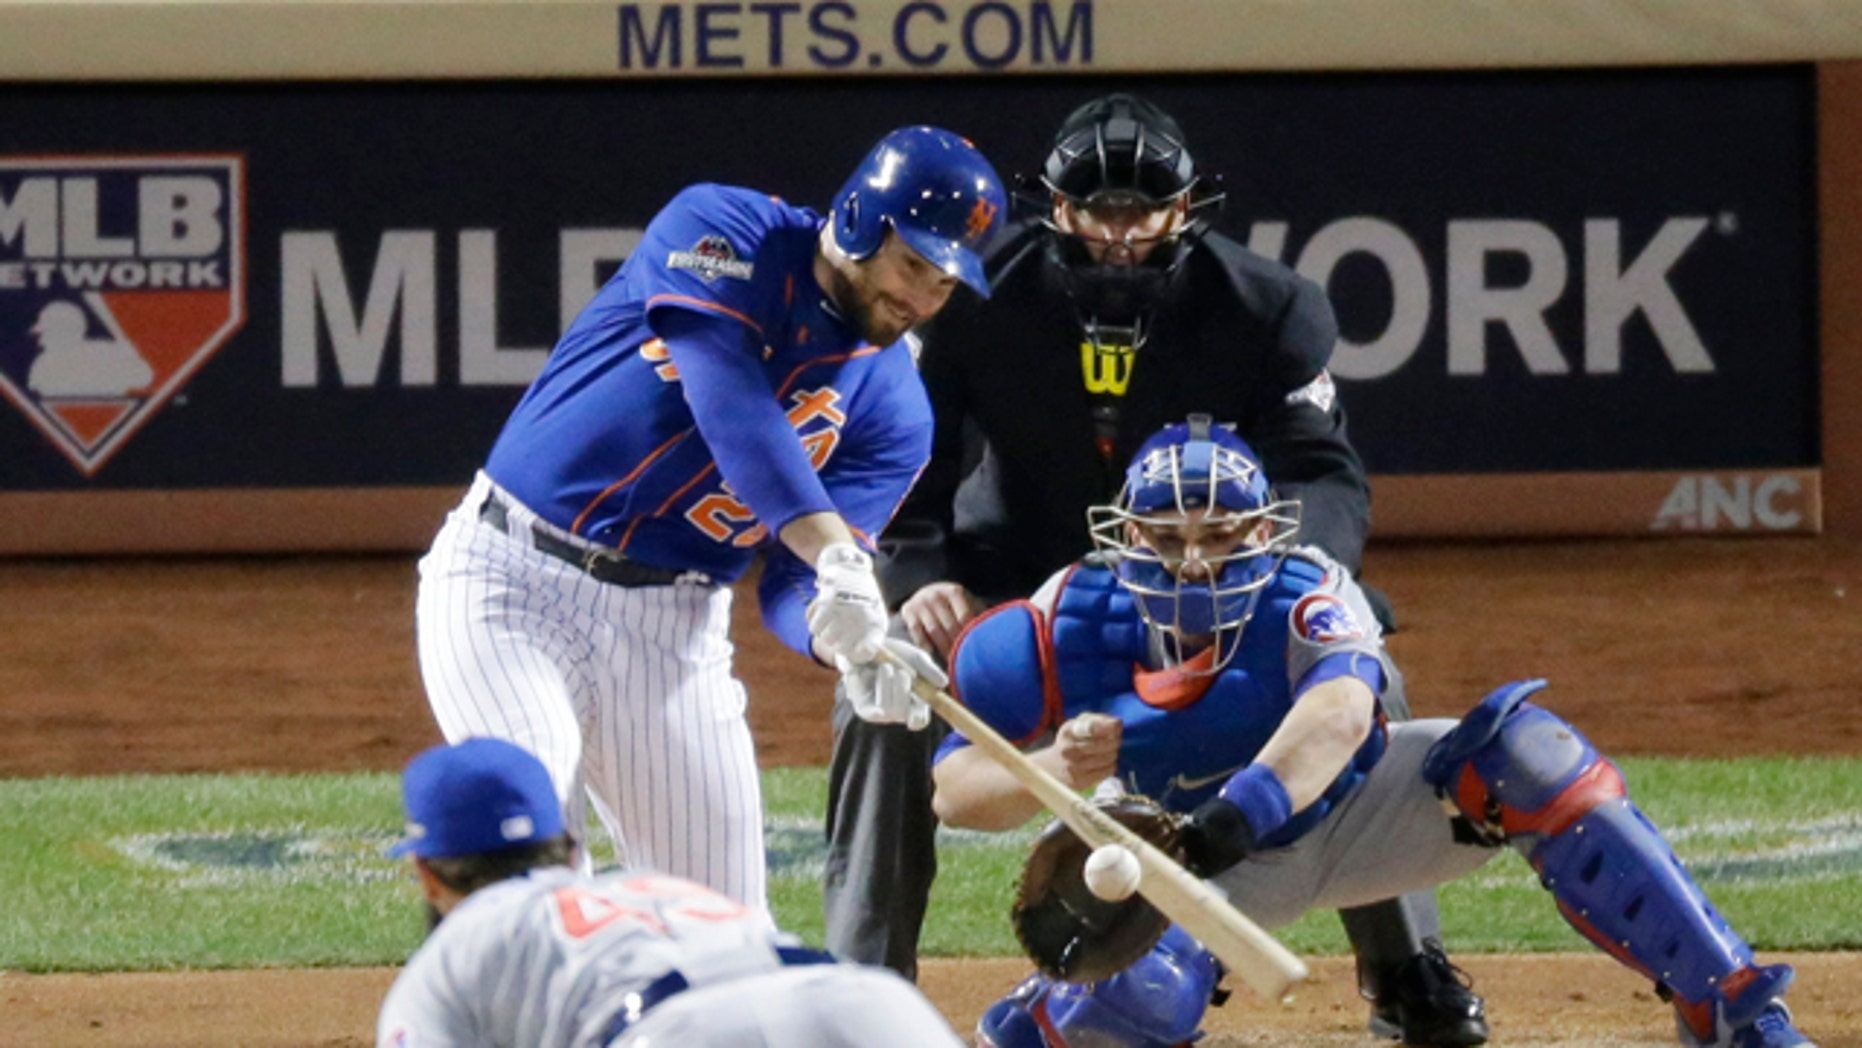 Oct. 18, 2015: New York Mets' Daniel Murphy hits a two-run home run during the first inning of Game 2 of the National League baseball championship series against the Chicago Cubs in New York. (AP Photo/David Goldman)